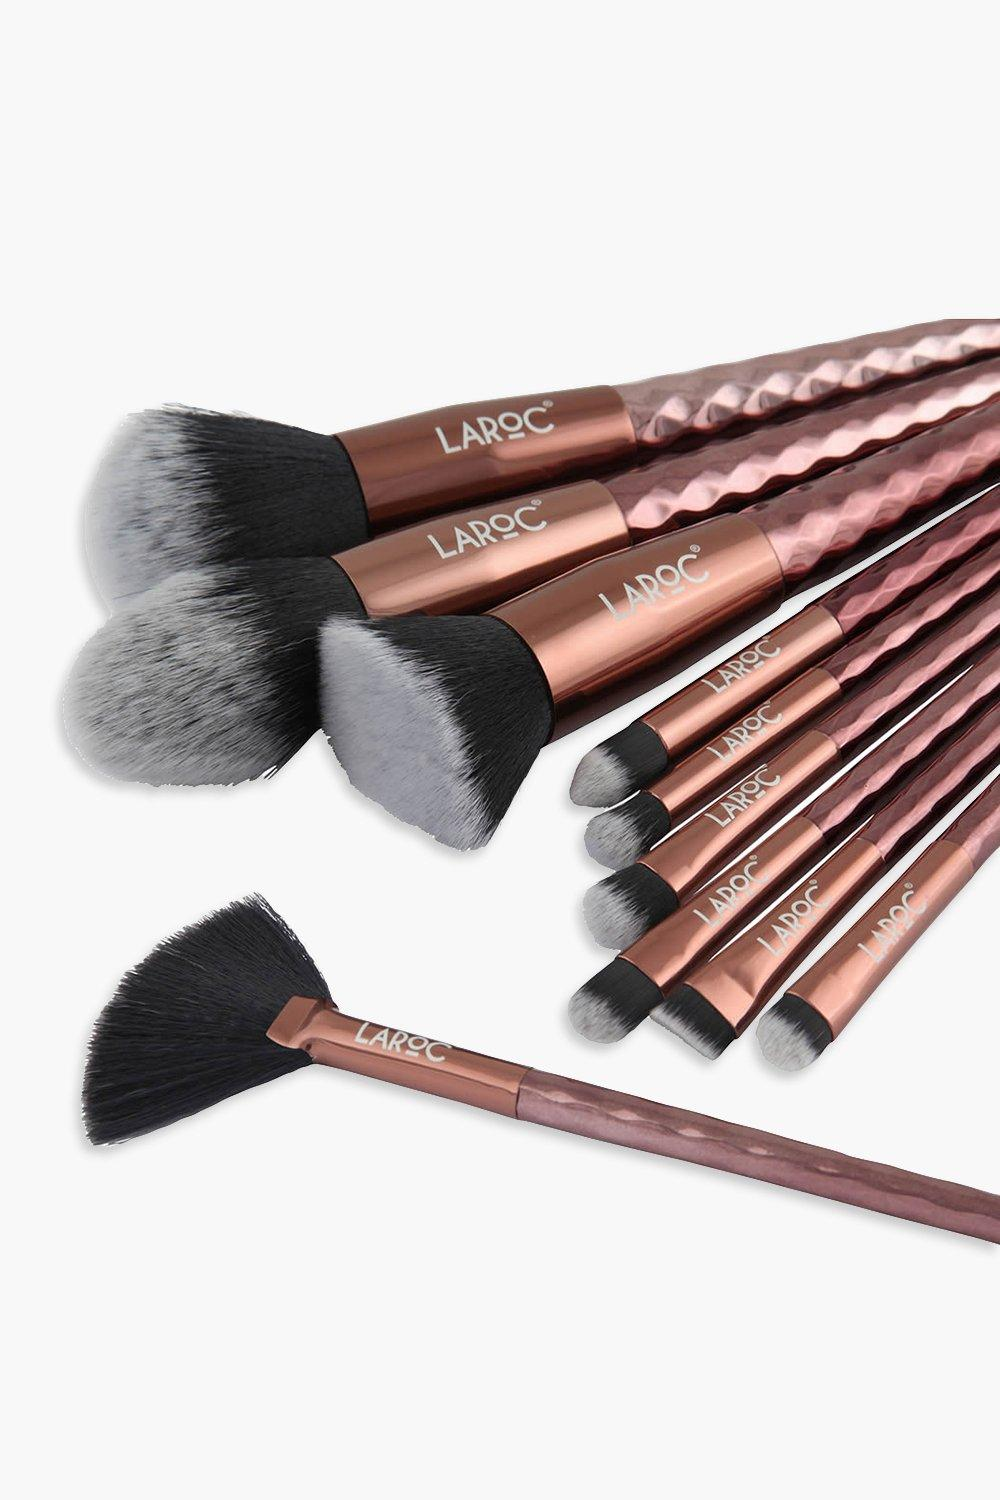 Queen Royalty Ten Piece Rose Gold Diamond Makeup Brush Set-Woven Trends